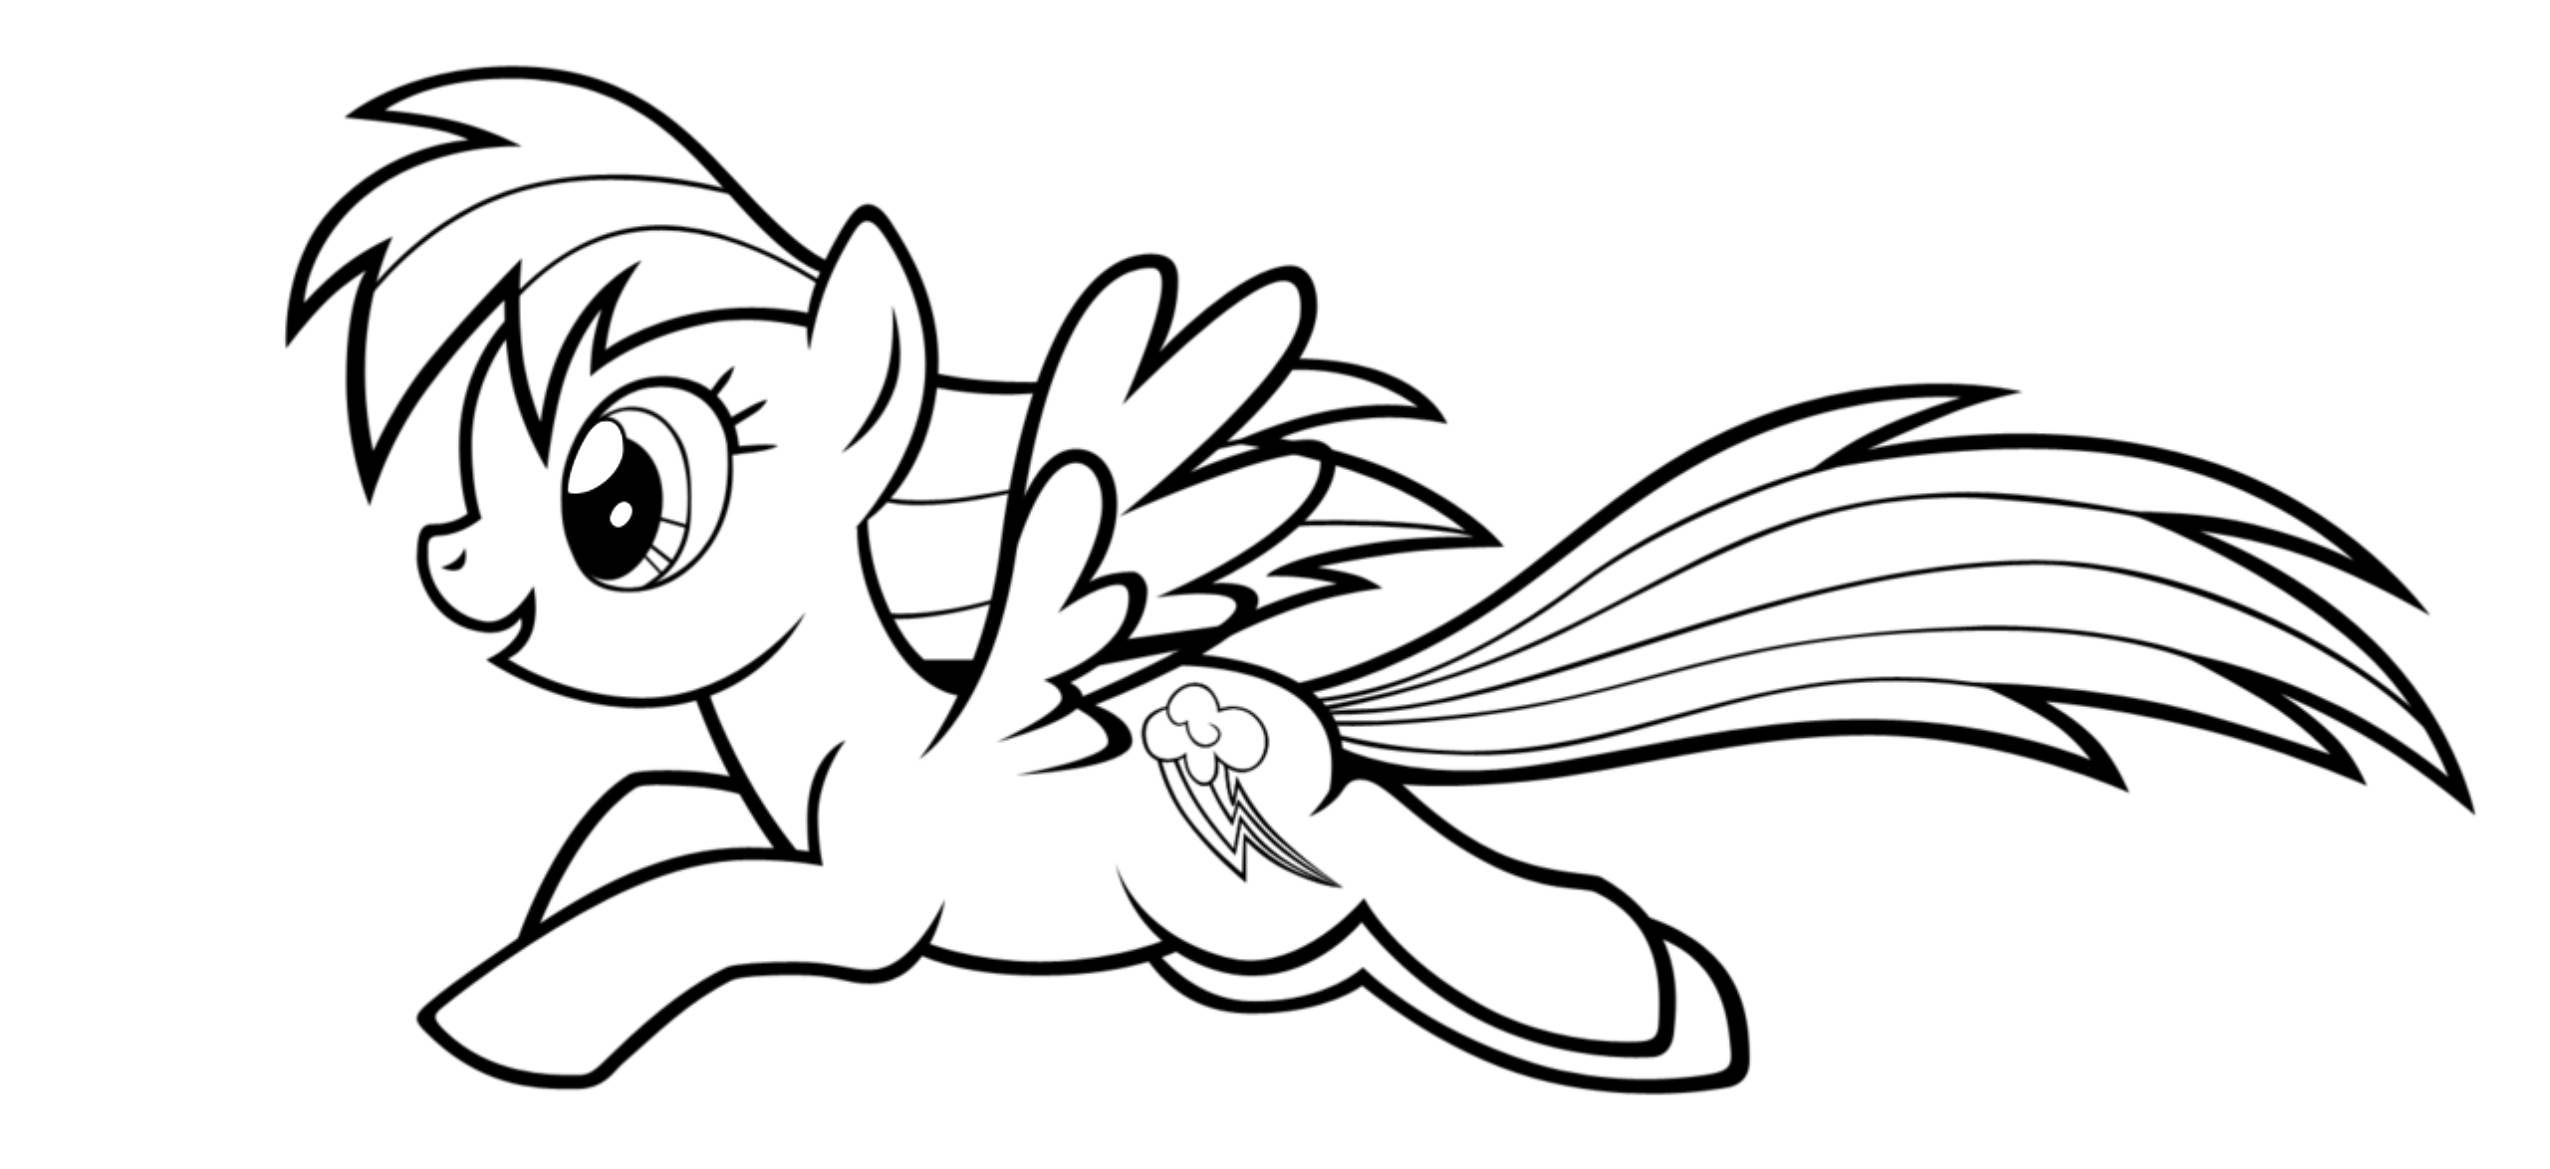 Rainbow Dash Pictures To Print Print Download Colorful Rainbow Dash Coloring Pages to